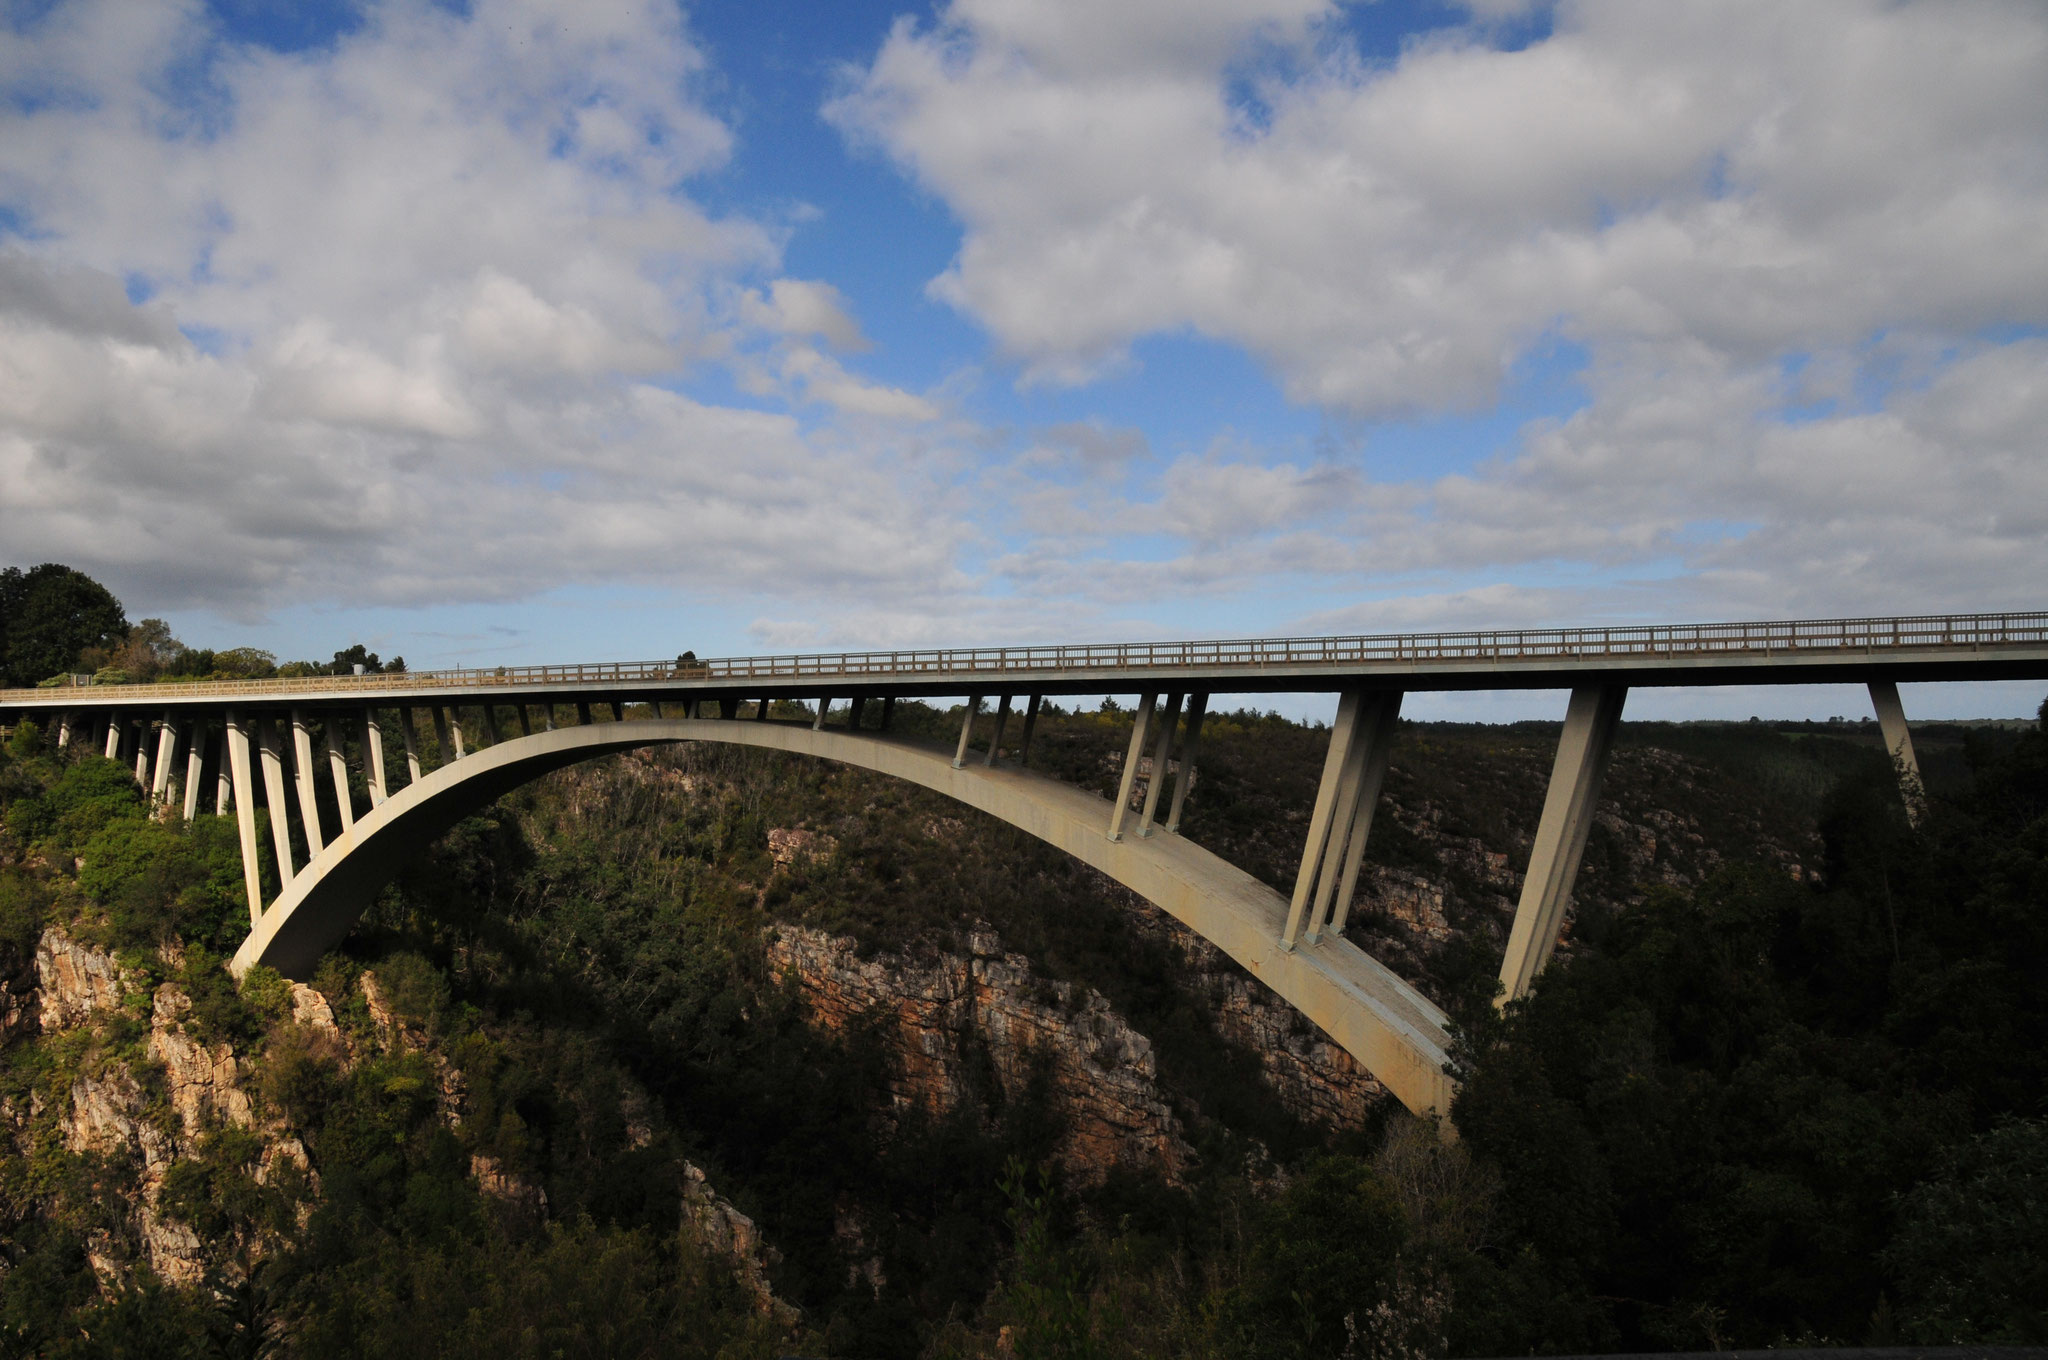 Die Storms River Bridge (190m lang, 130m hoch)